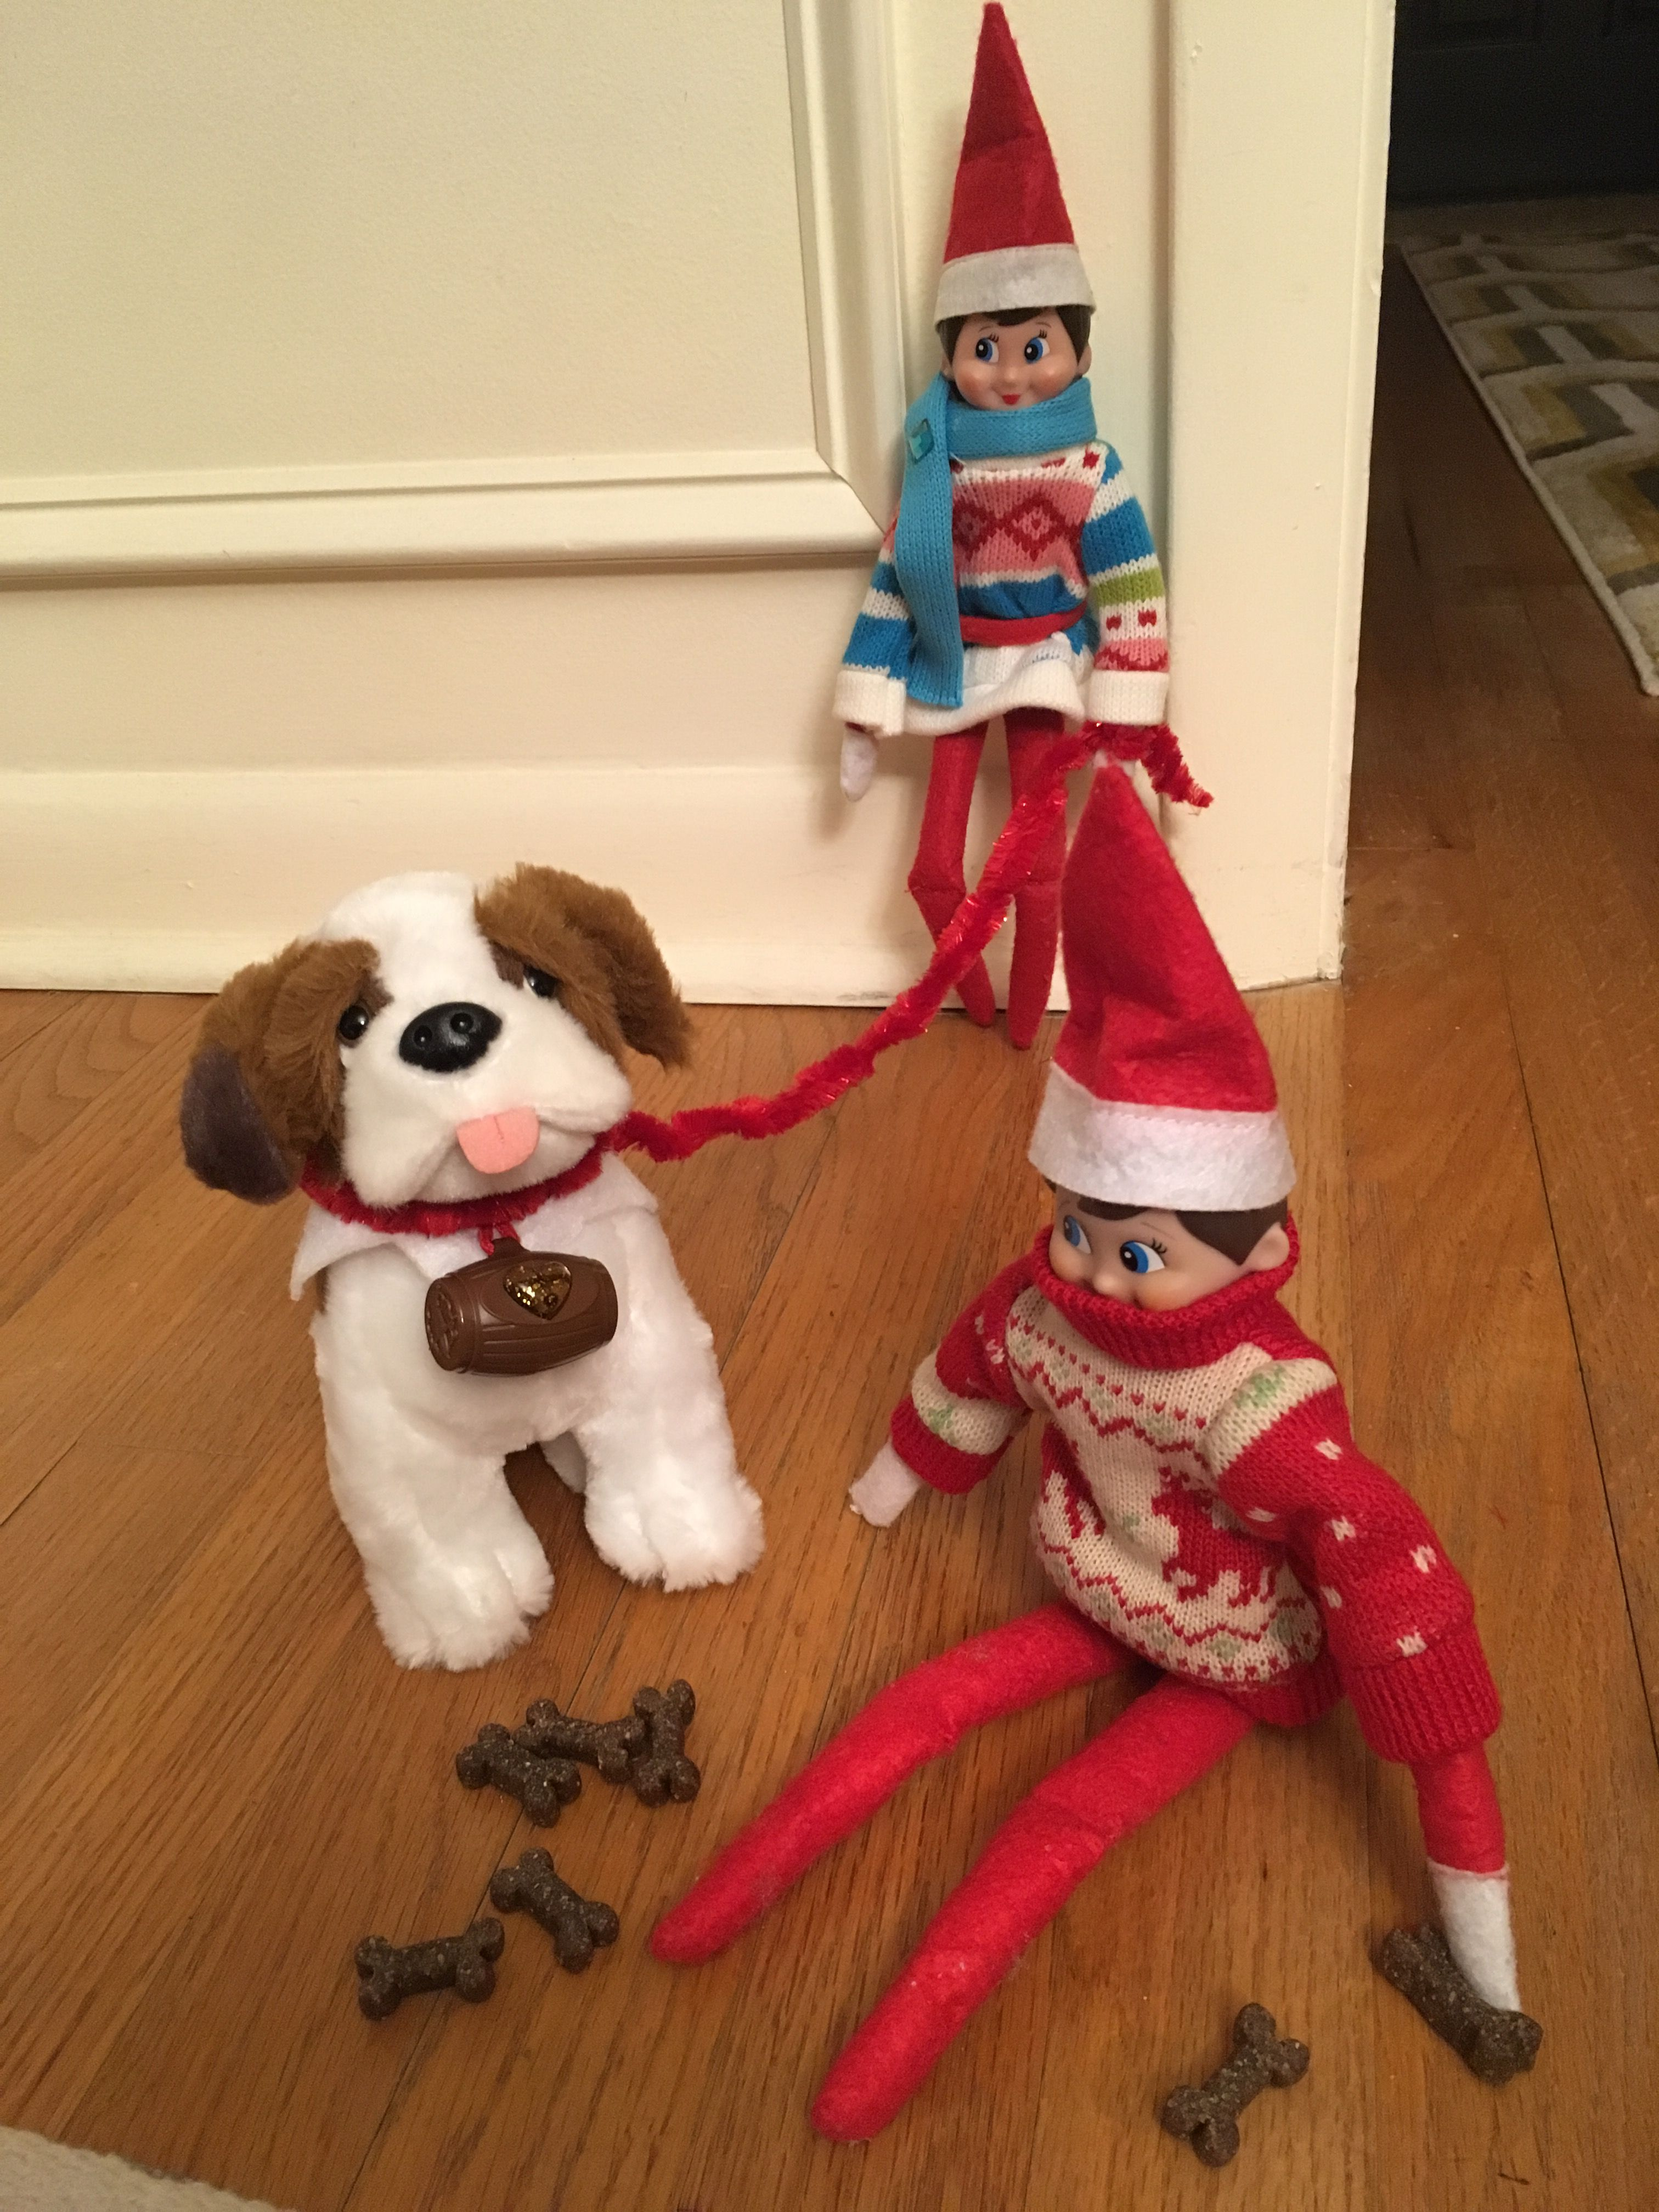 Elf on the shelf. James and Meebles walking their St